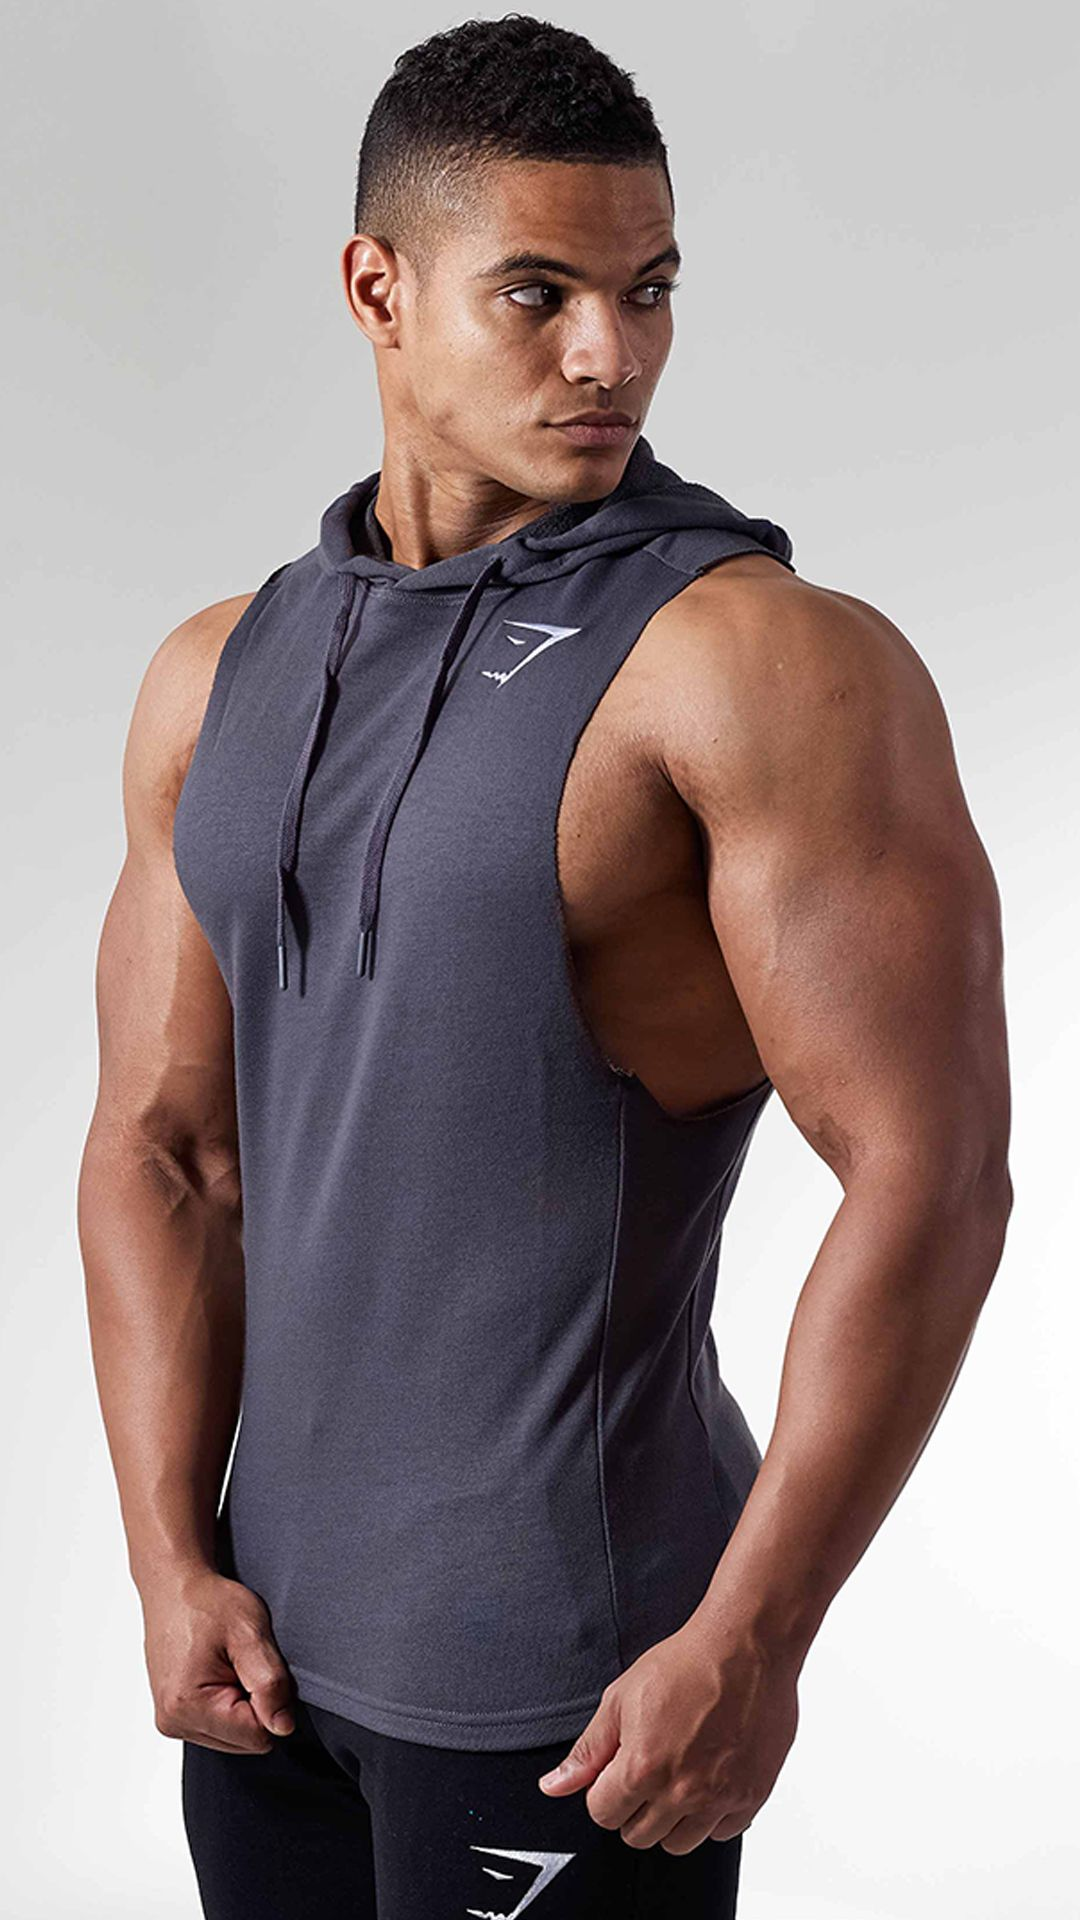 f7d8166cabbe2a The Drop Arm Sleeveless Hoodie is ready for your most intense workout. With  raw edged armholes and incredibly soft blend